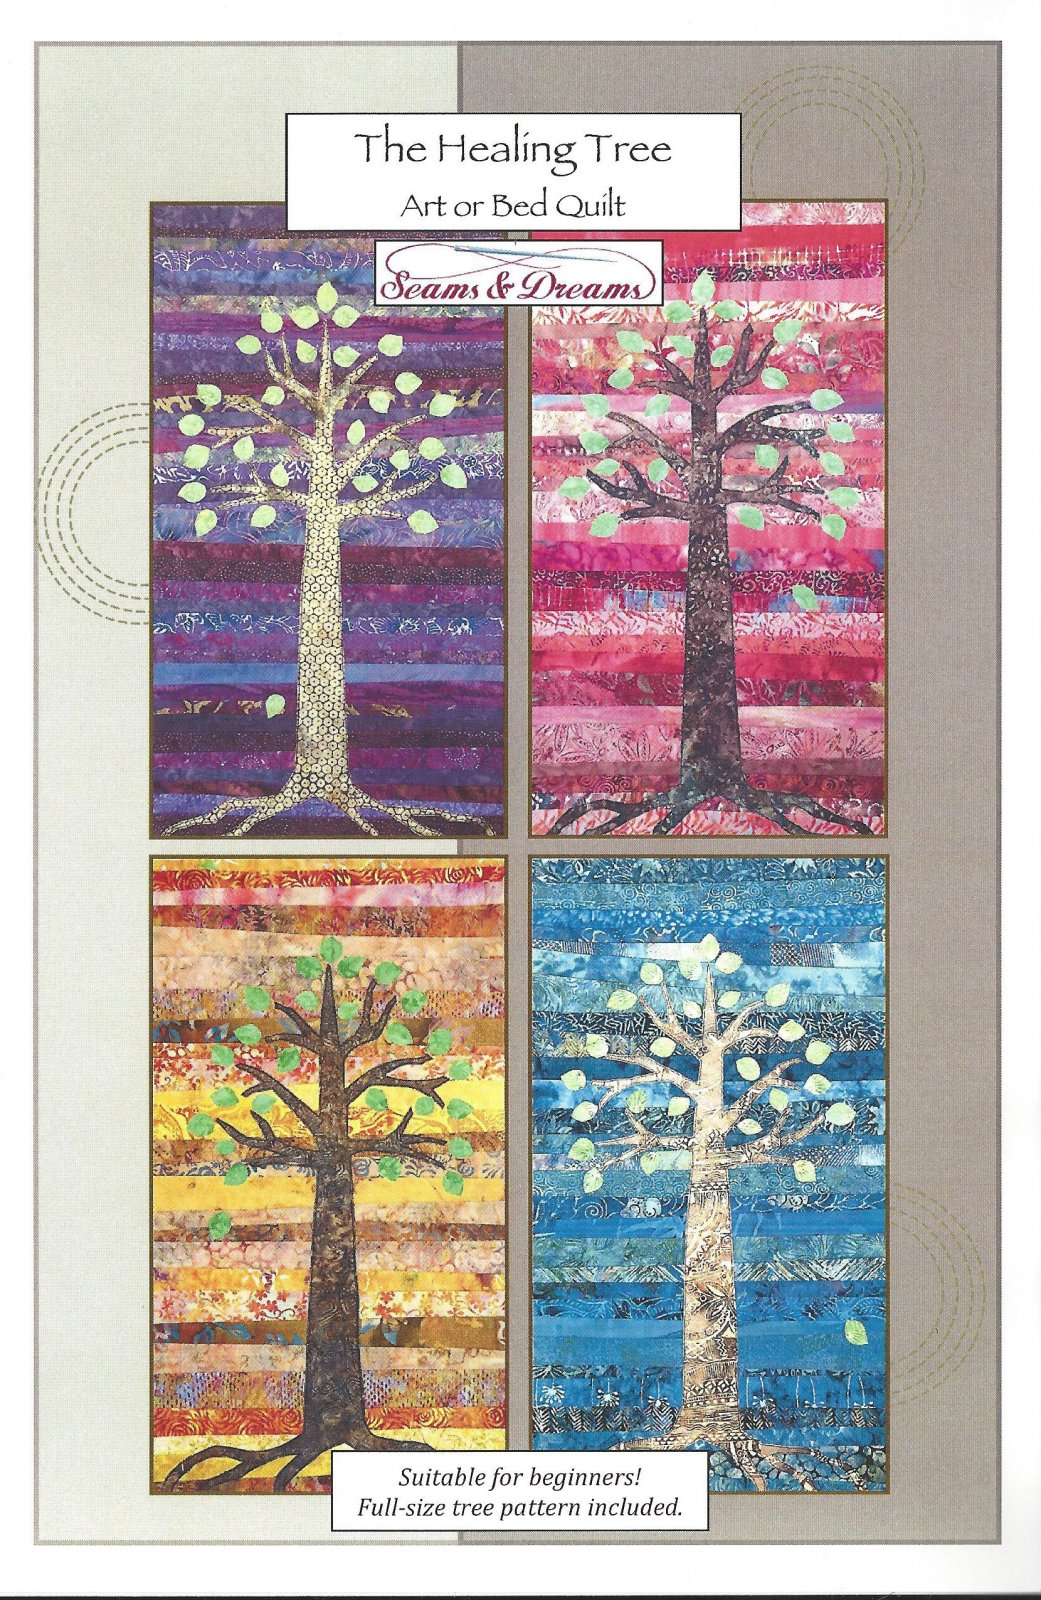 The Healing Tree Art or Bed Quilt